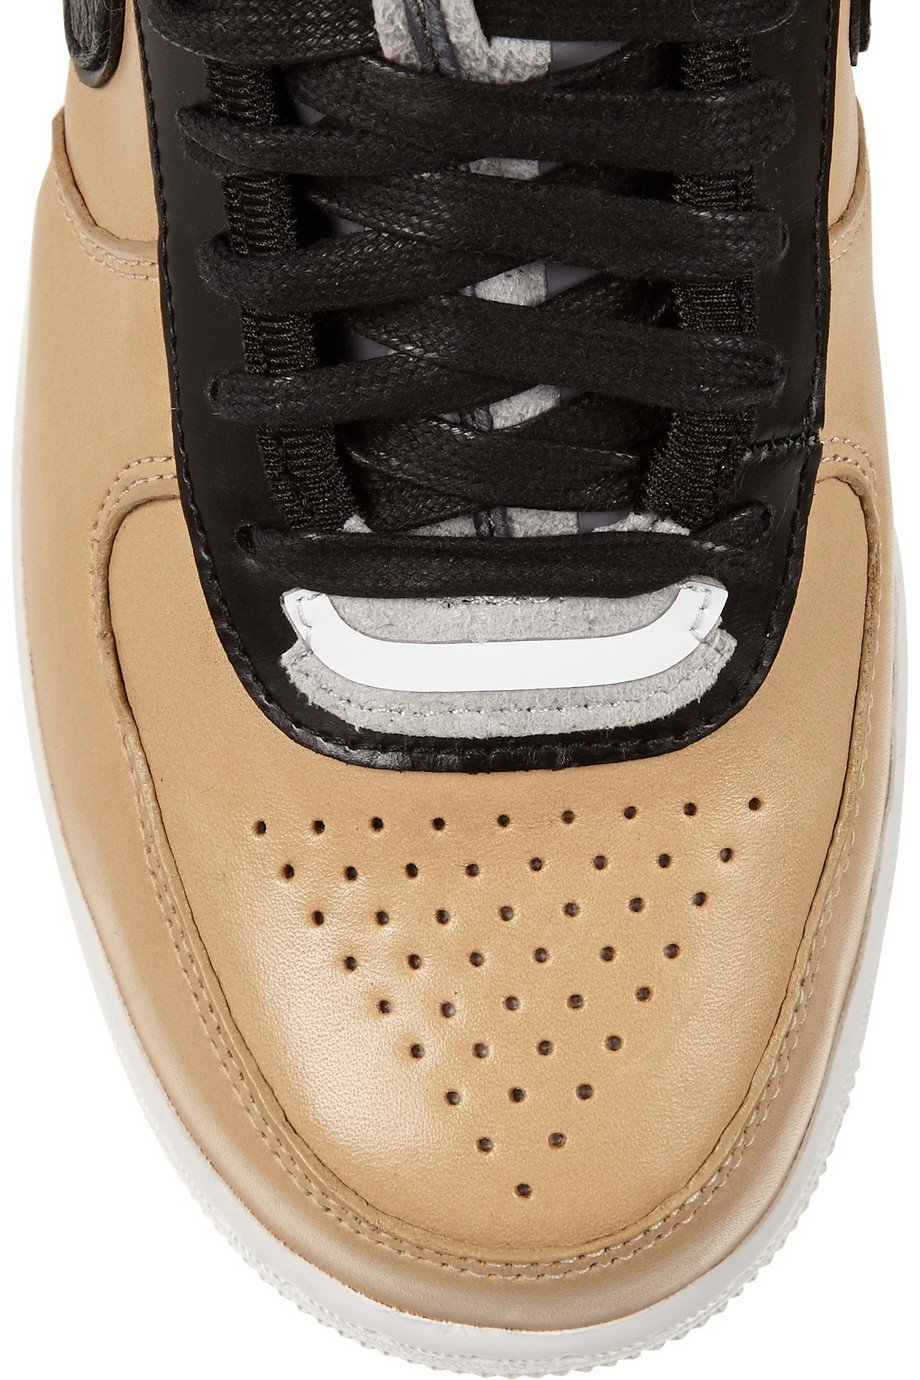 Lyst - Nike  Riccardo Tisci Air Force 1 Leather High-Top -8733